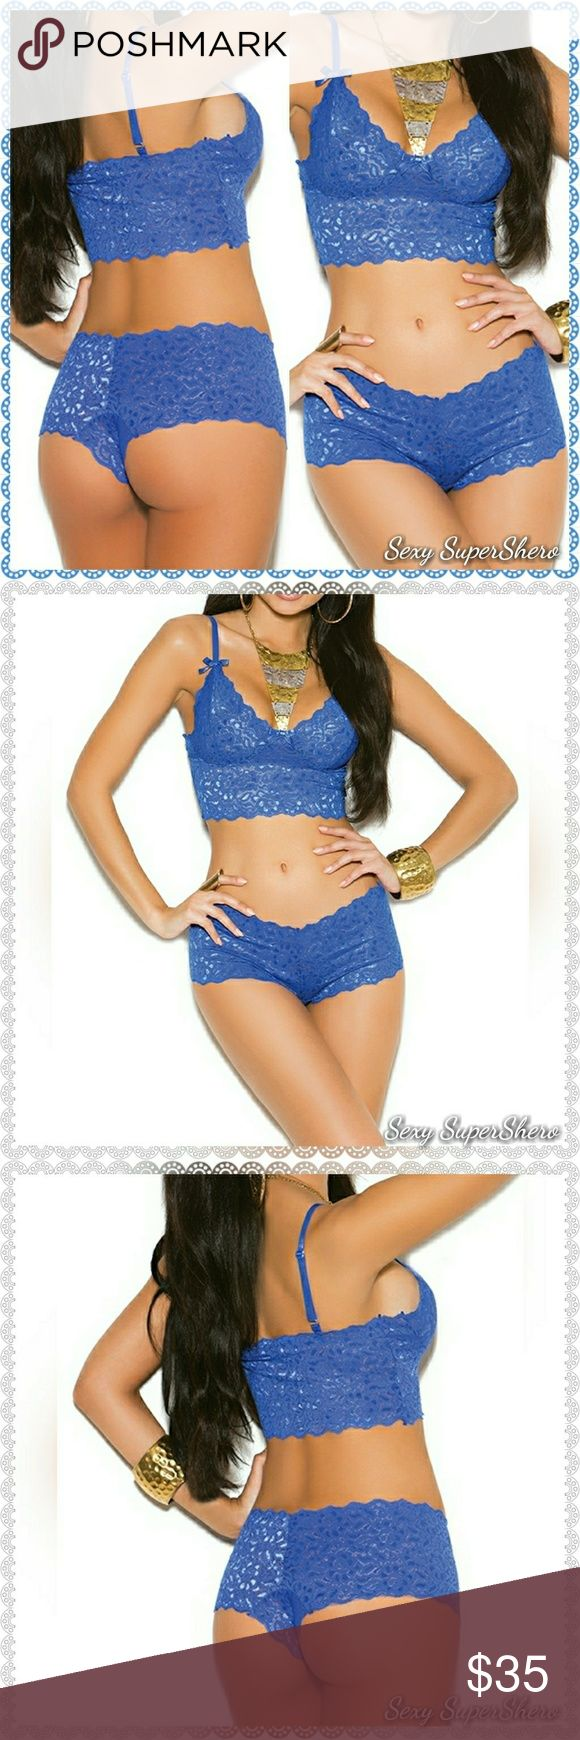 Blue Lace Booty Shorts & Cami top Lingerie set Soft Stretch lace booty shorts with matching camisole top, beautifully embellished with cute satin bows. Shoulder straps are adjustable. These sets are super soft and beyond comfortable!   Size(s): S,M,L (see size chart pic above)  Color(s): This listing is for the Royal Blue, Also available in Red,Black,and White and in Plus sizes! Check out my other listings.  Material(s): 90% Nylon, 10% Elasthan Prices are firm unless bundled Bundle to save…